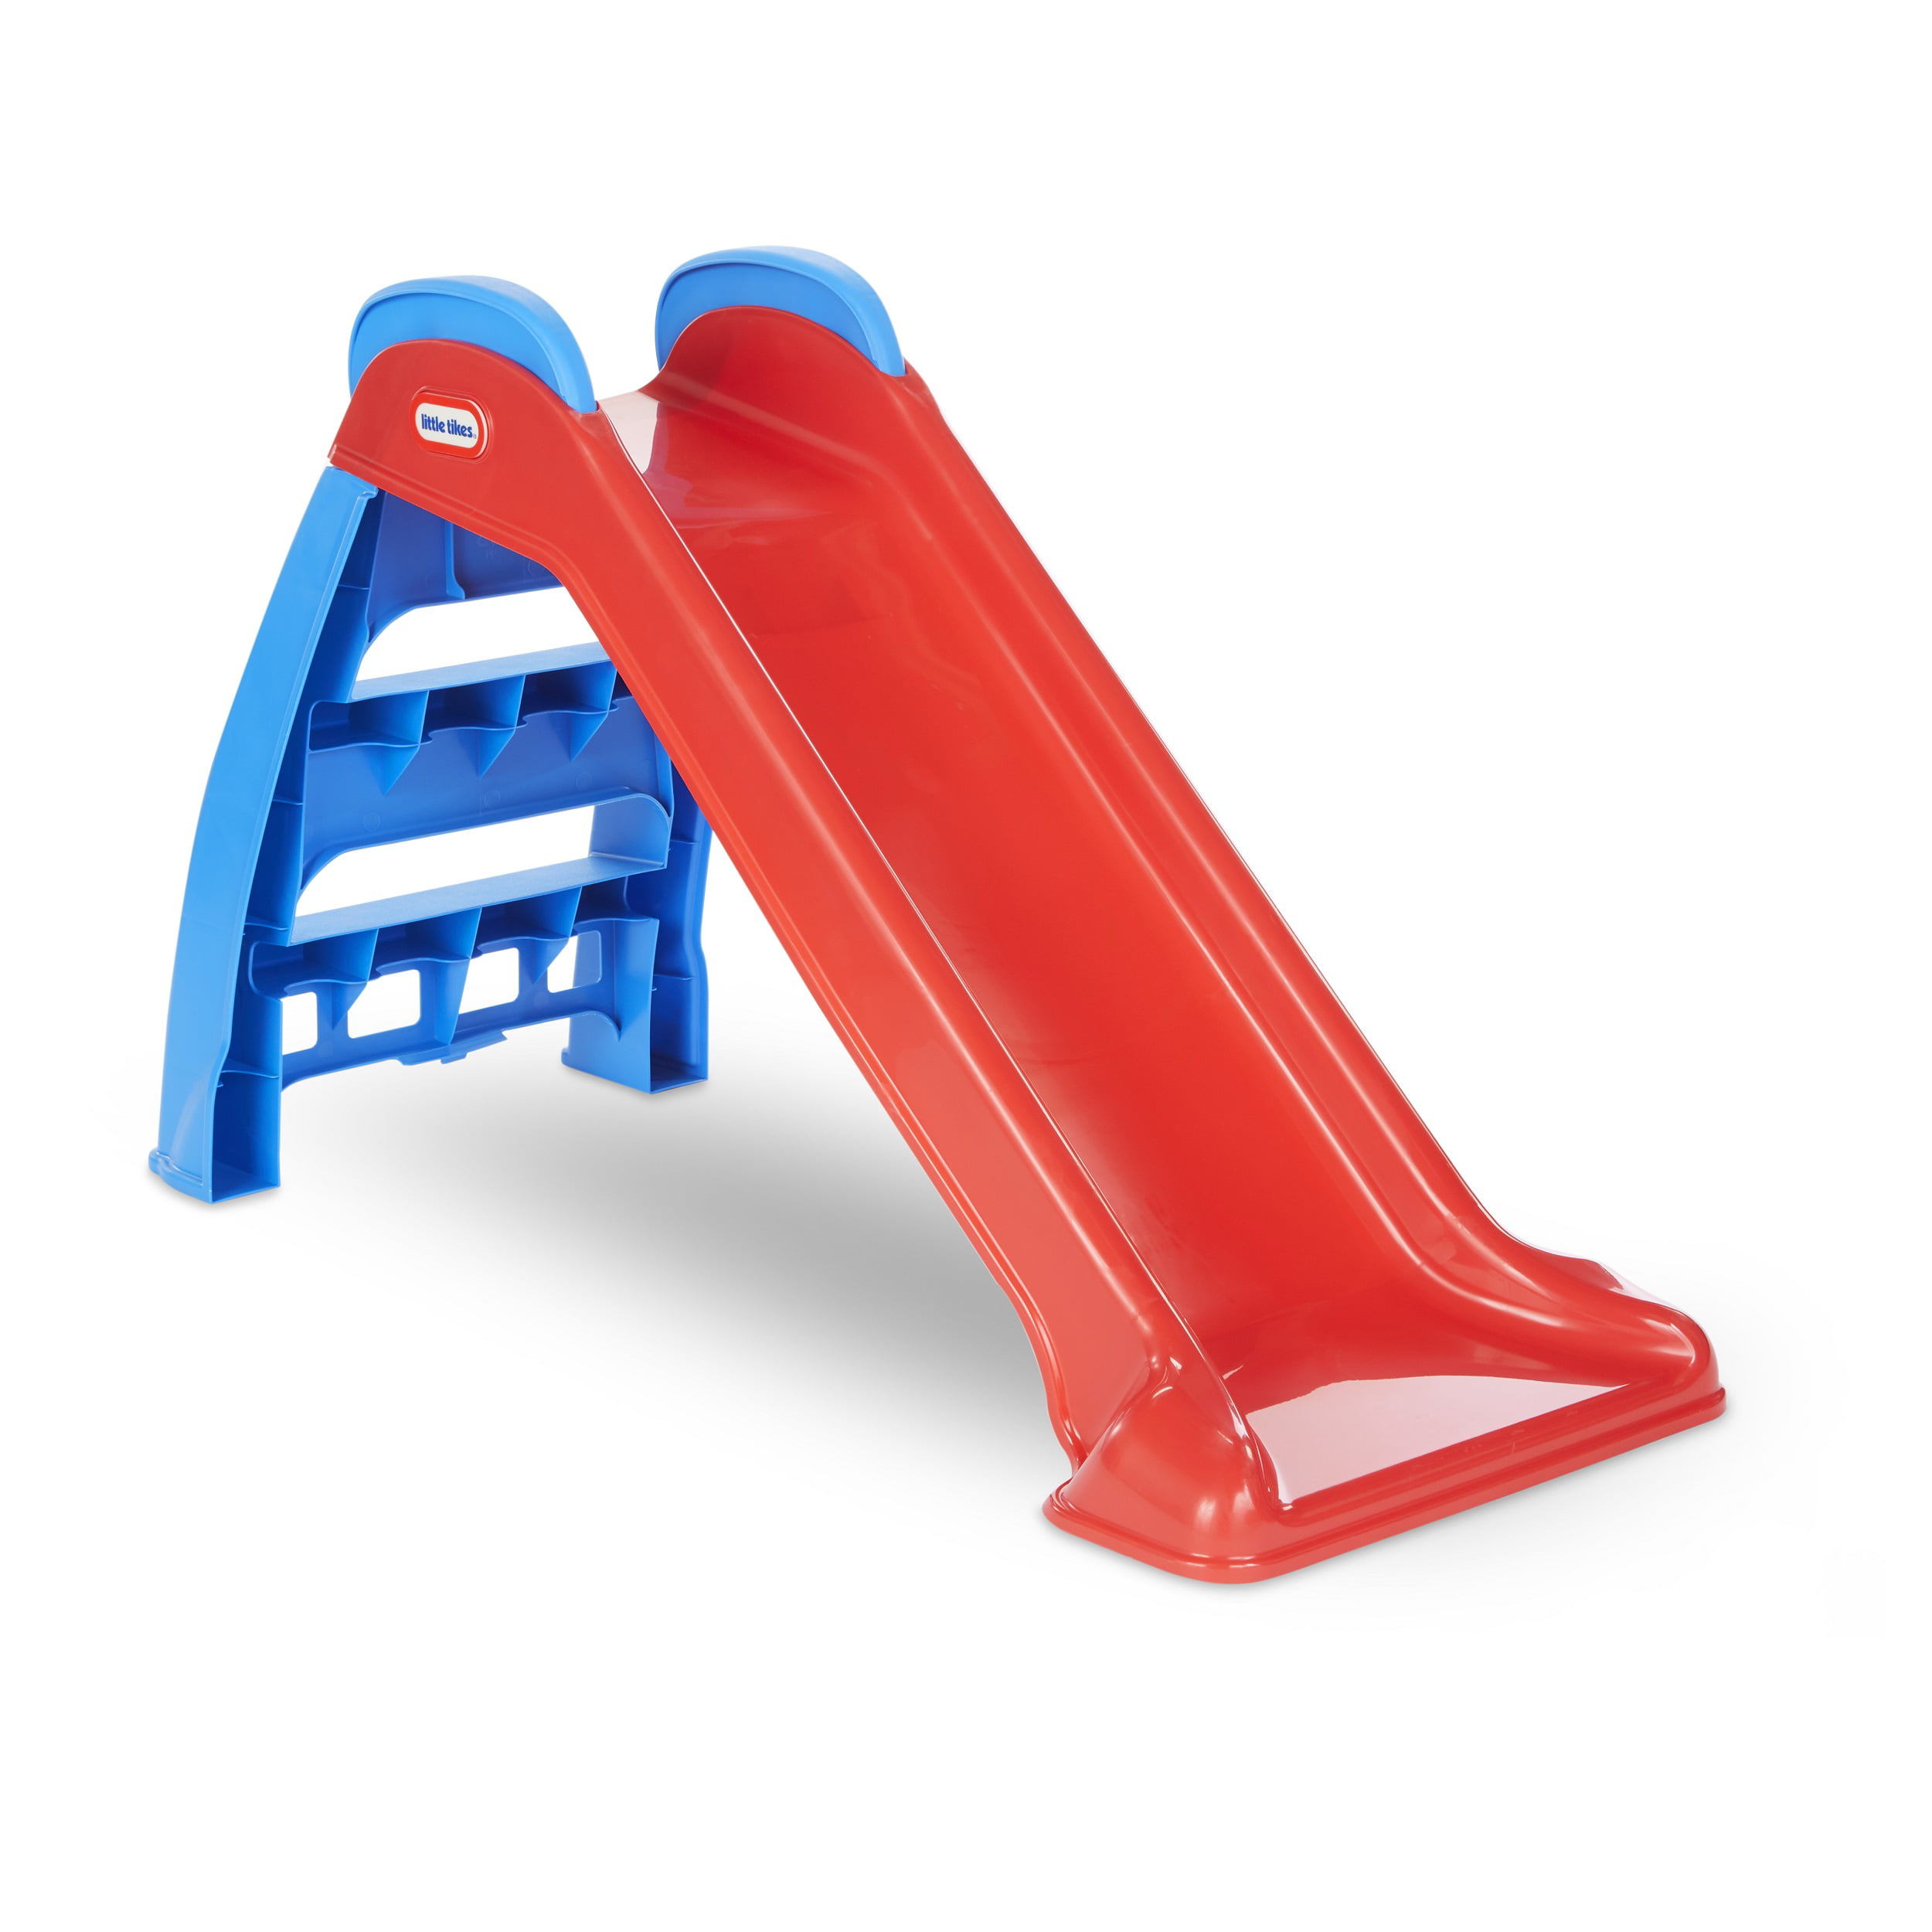 Little Tikes First Slide Red Blue Indoor Outdoor Toddler Toy Walmart Com